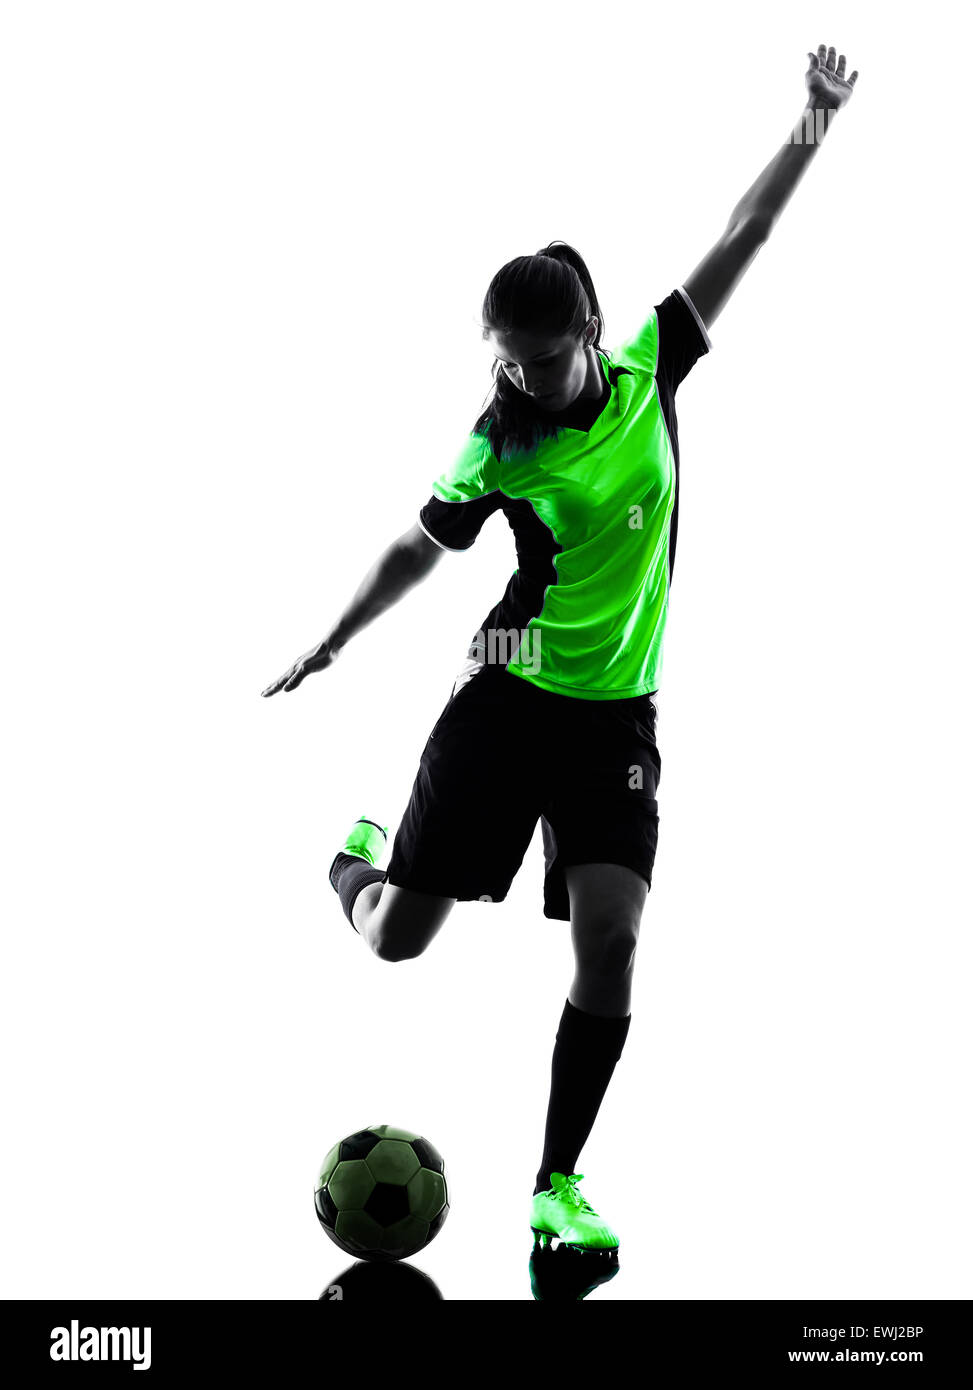 one woman playing soccer player in silhouette isolated on white background - Stock Image